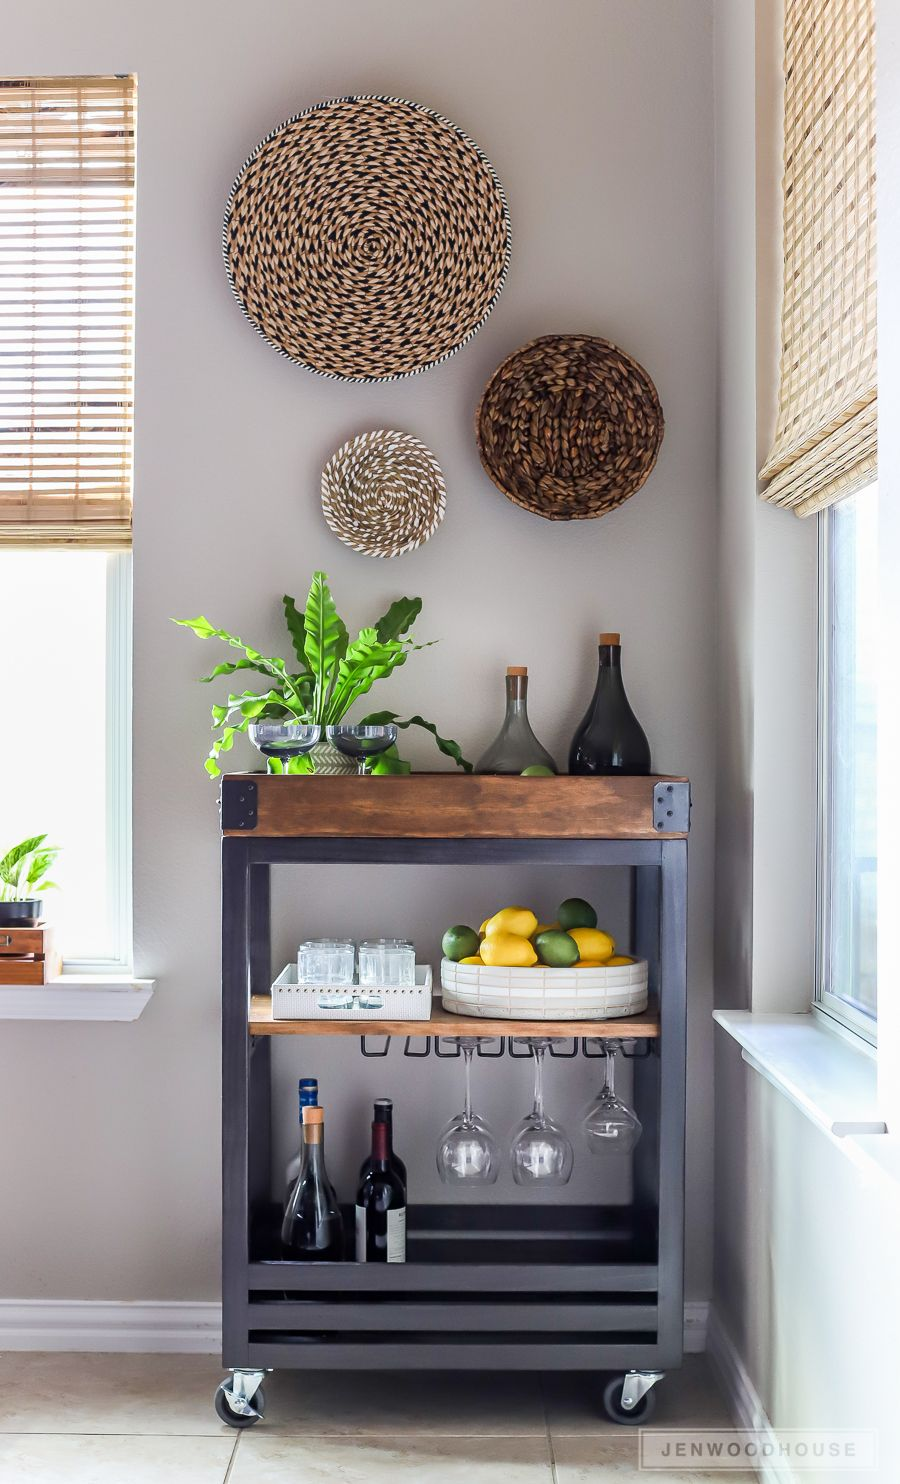 How To Build A Diy Bar Cart With A Rustic Industrial Look Diy